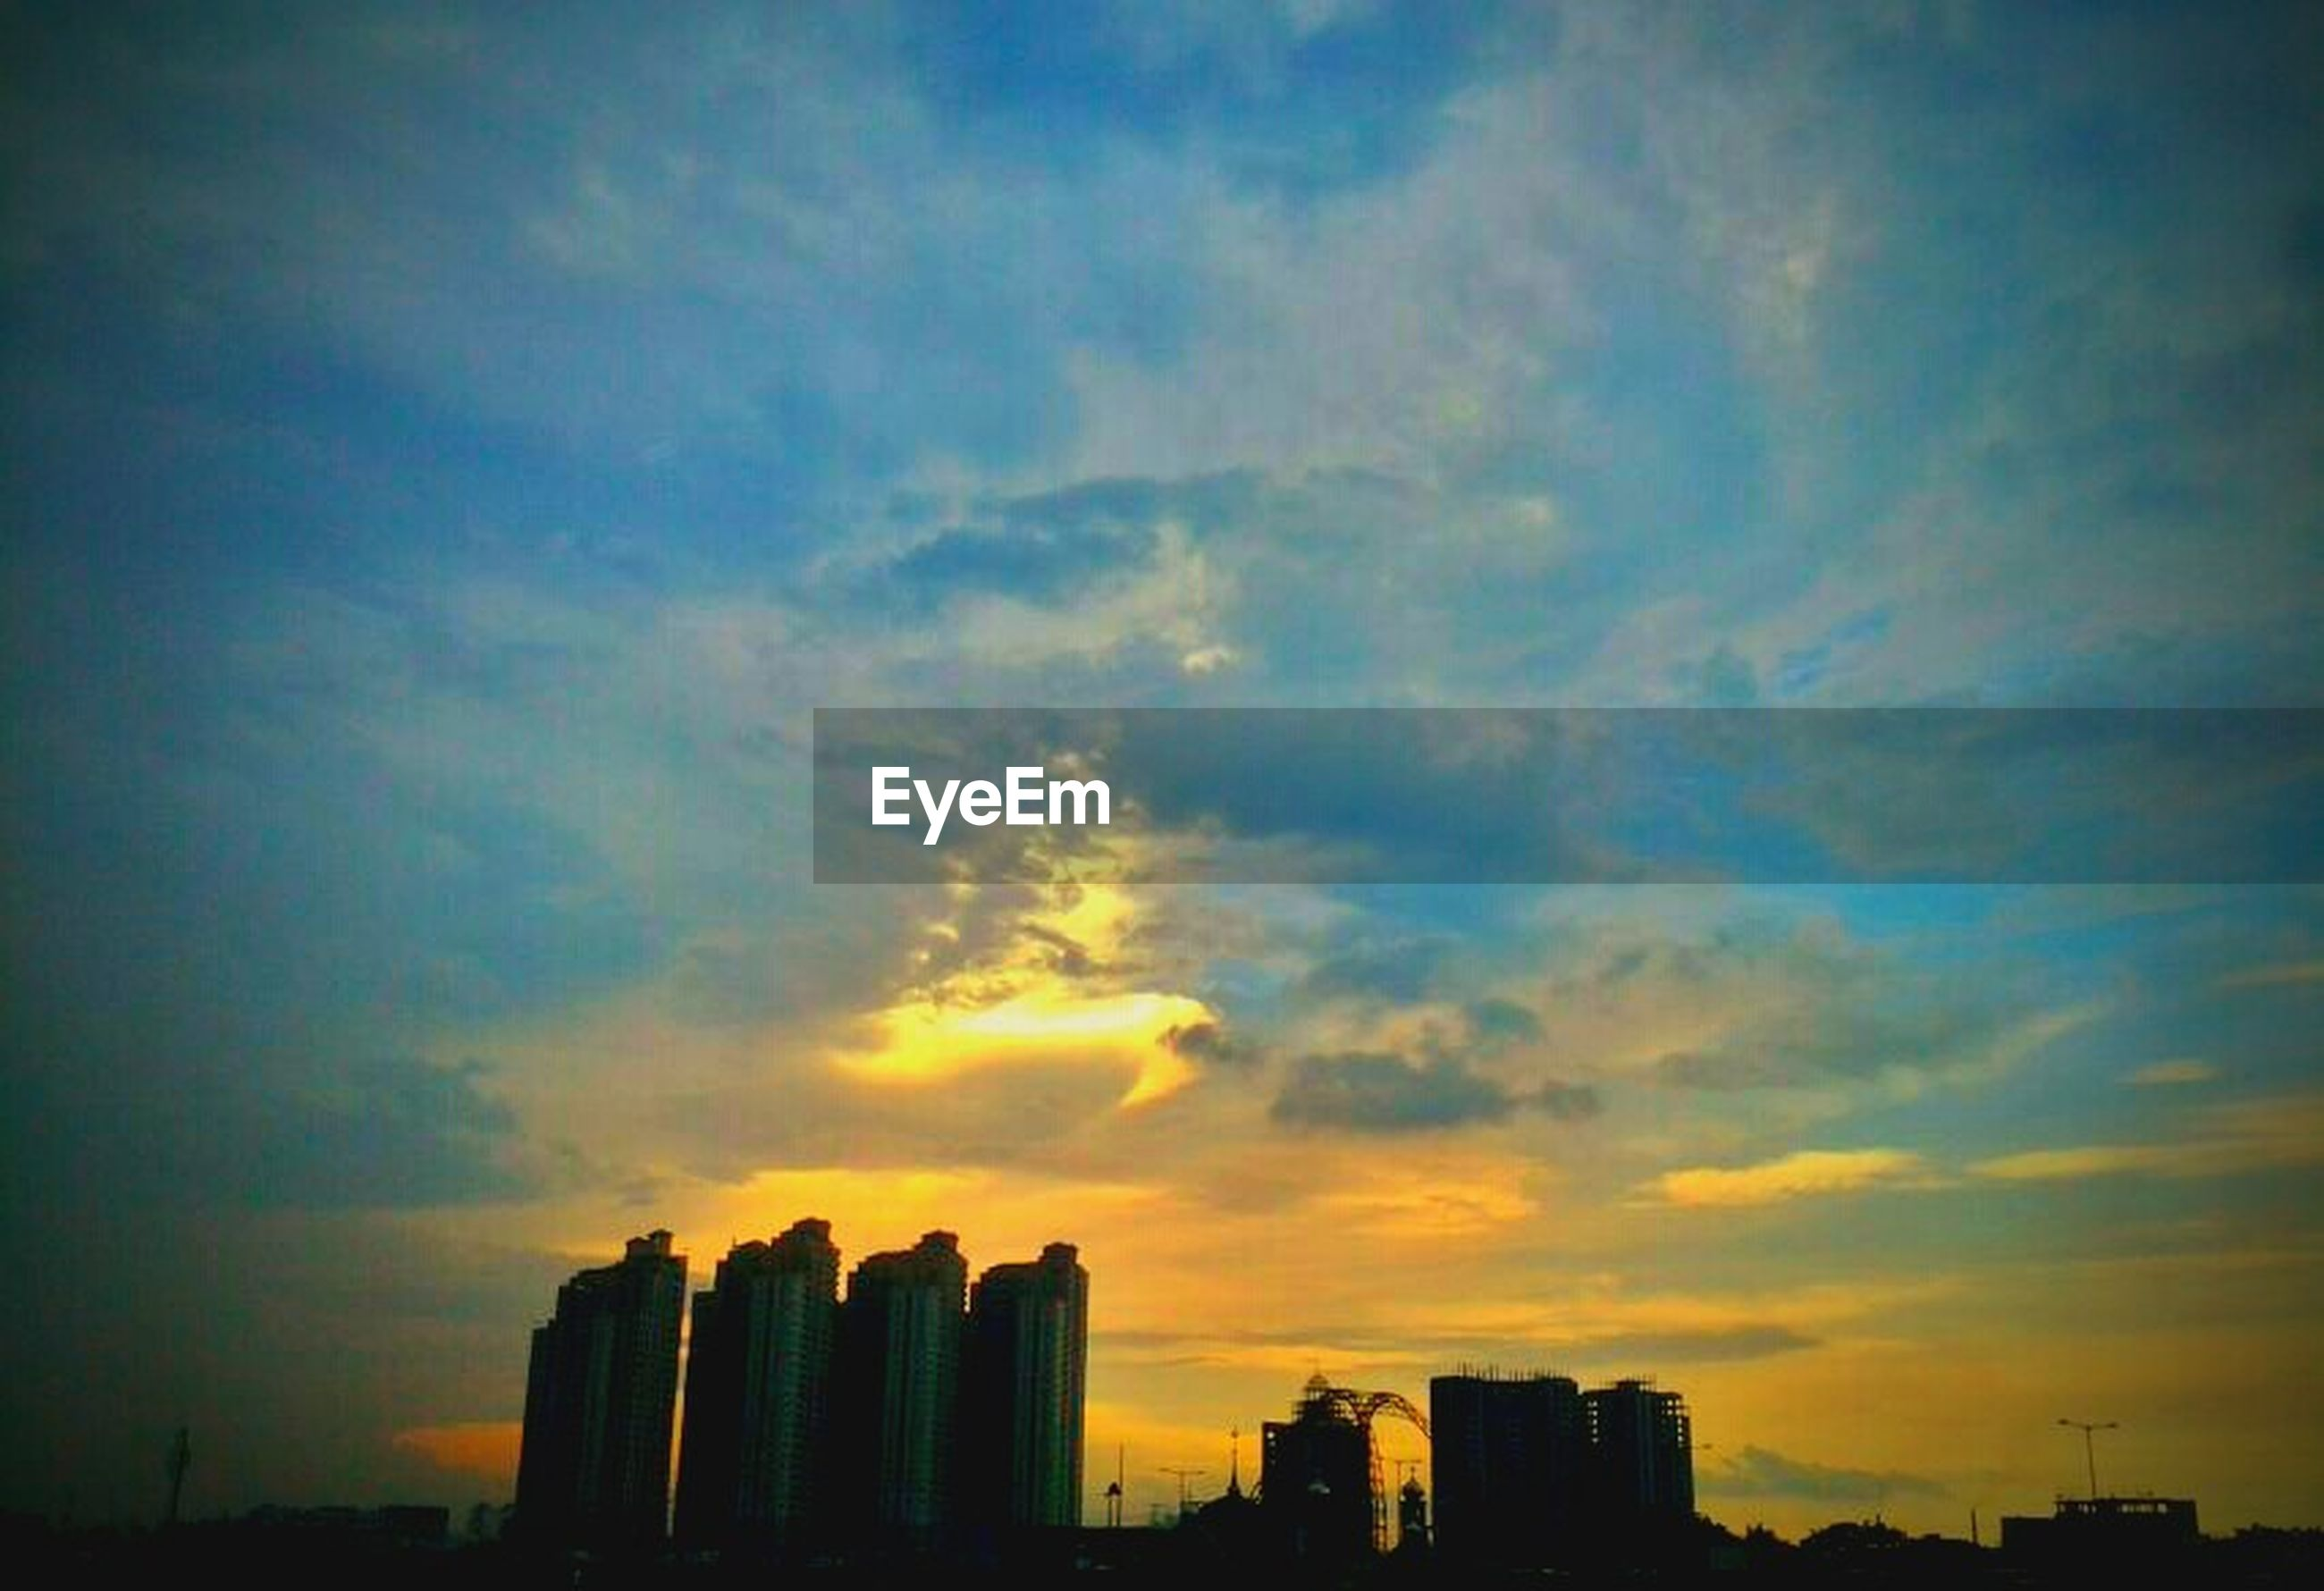 sunset, building exterior, silhouette, architecture, sky, built structure, city, cloud - sky, orange color, low angle view, cloud, beauty in nature, scenics, skyscraper, building, outdoors, nature, cityscape, no people, dramatic sky